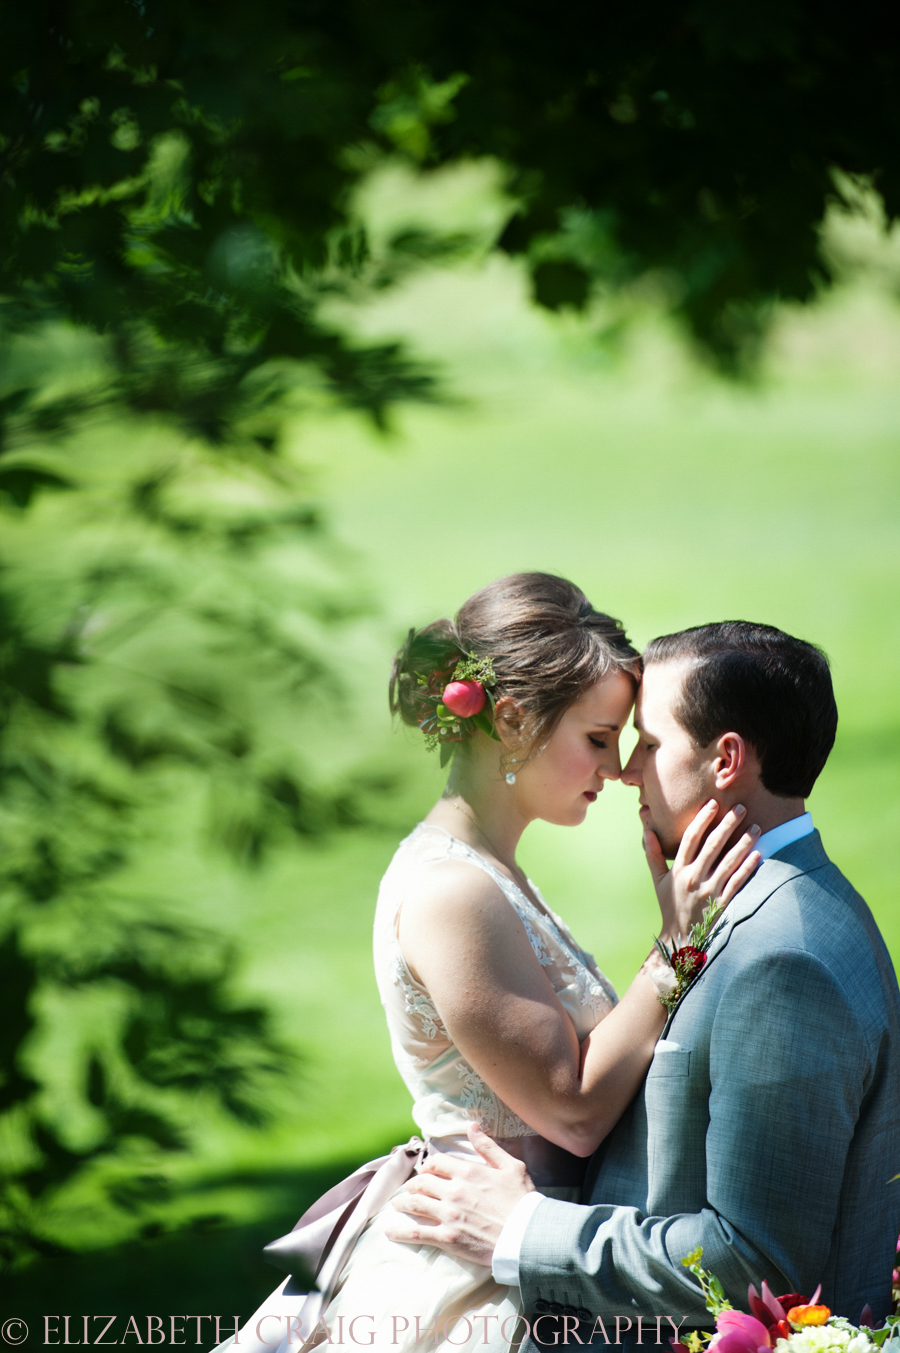 Shady Elms Farm Weddings and Receptions Elizabeth Craig Photography-0042